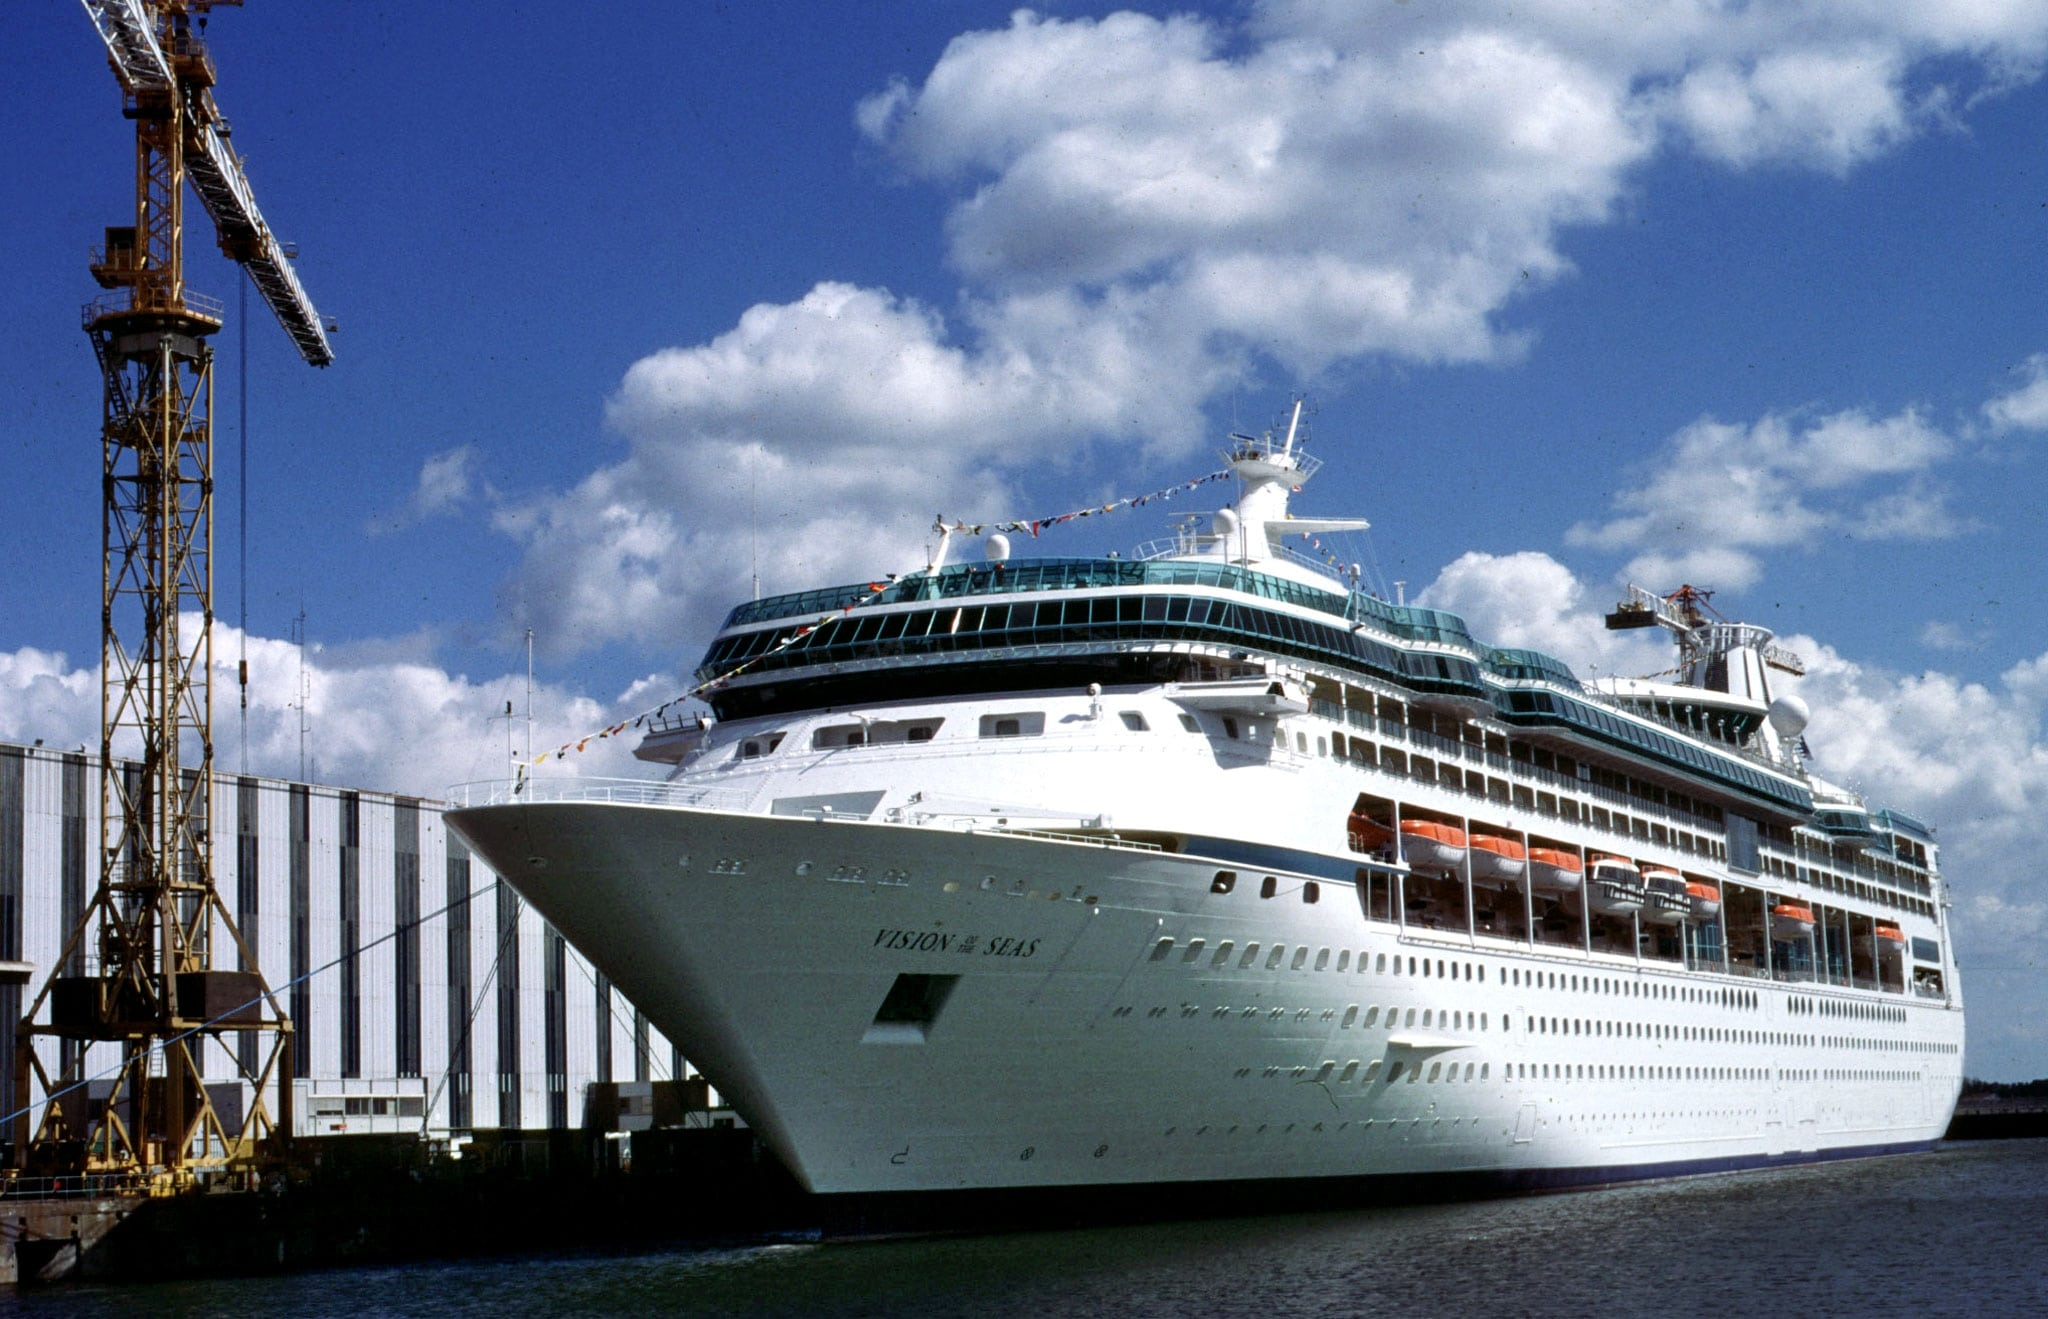 Cruise deals are easy, thanks to the norovirus and stricken Carnival Triumph